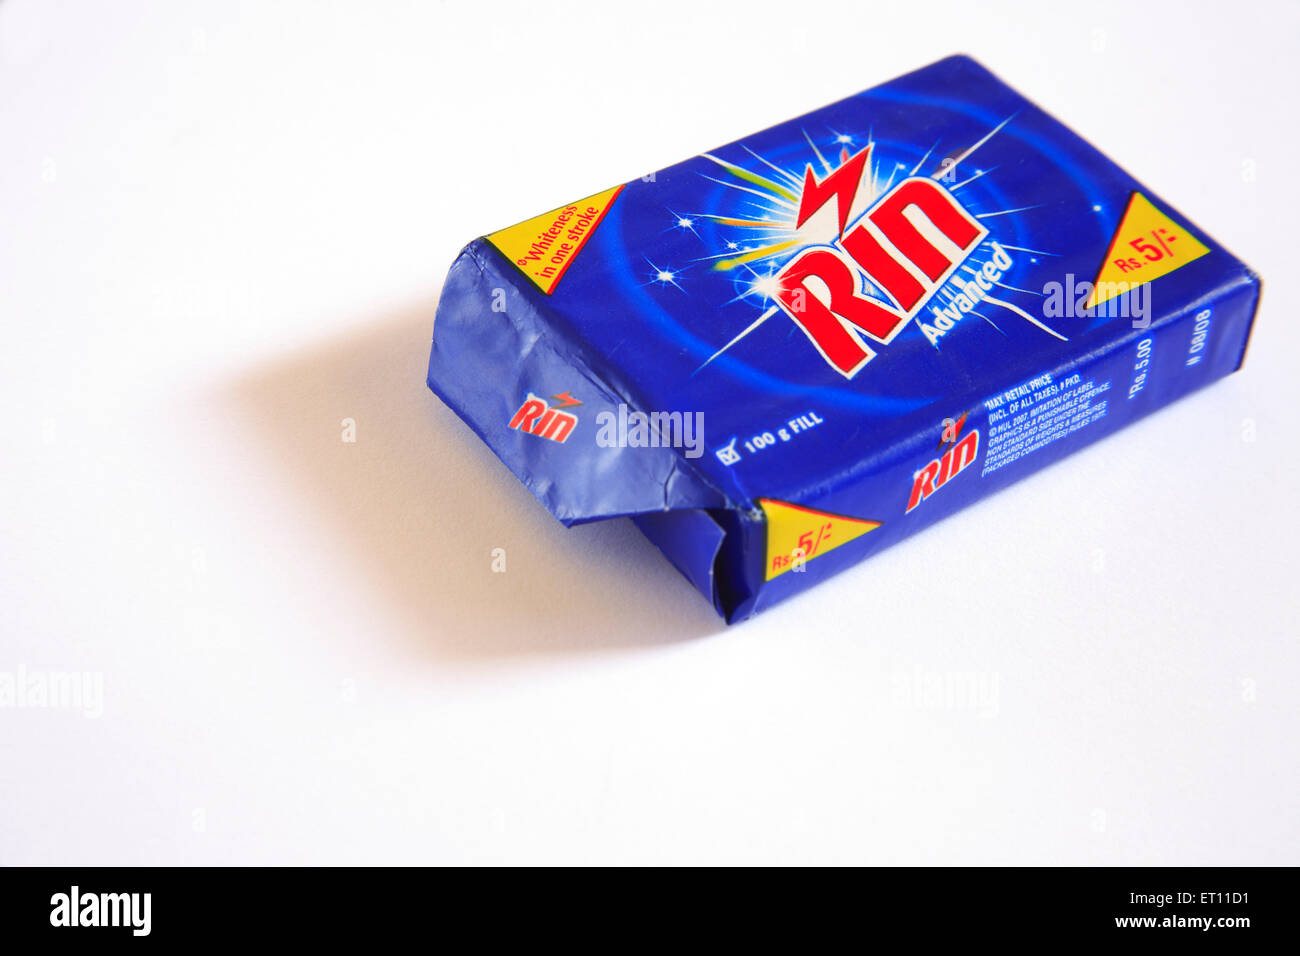 Detergent cack rin advanced whiteness on white background - Stock Image